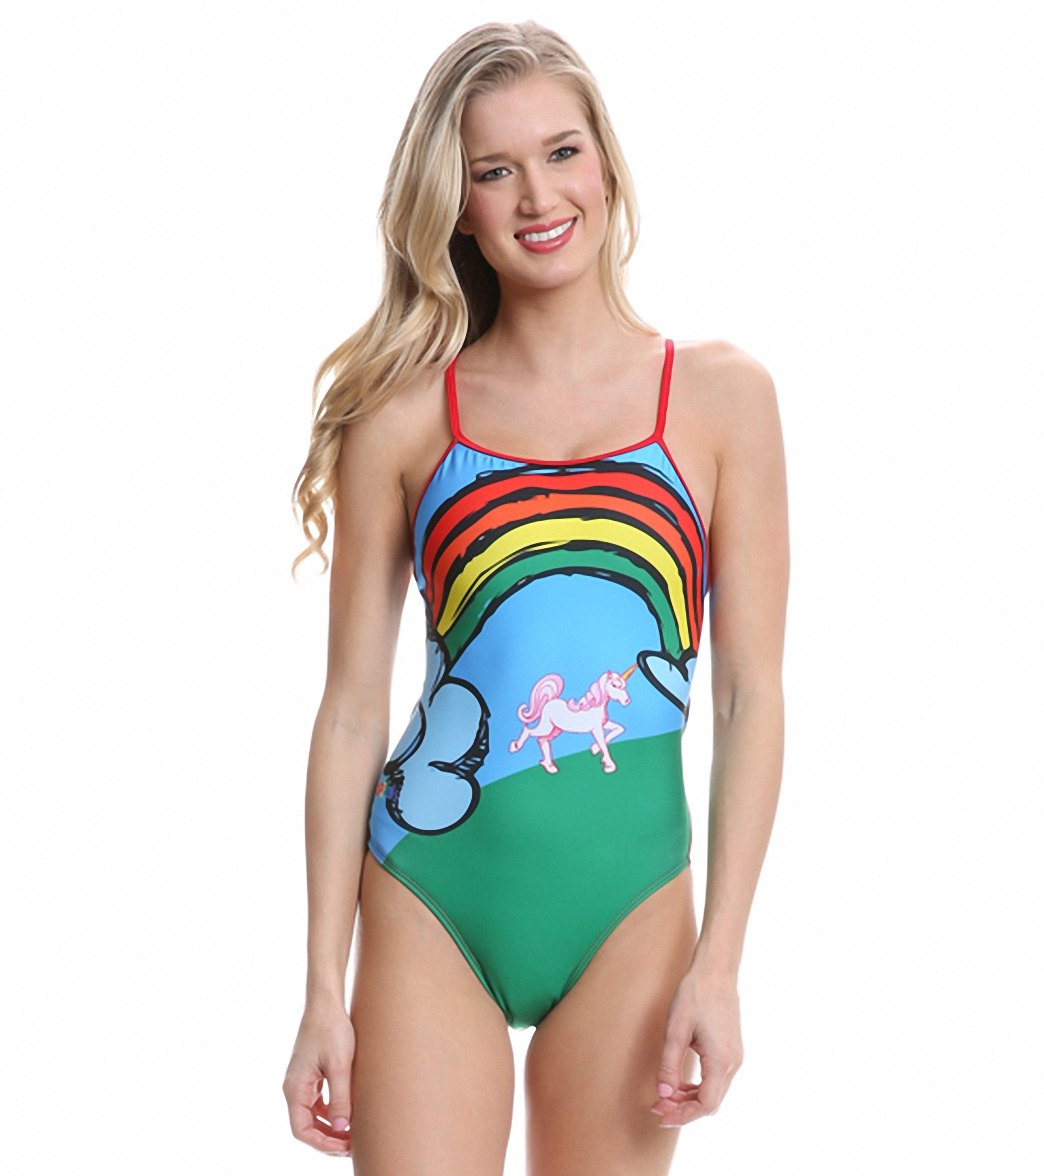 8132ce2252 Splish Unicorns and Rainbows Thin Strap One Piece Swimsuit at  SwimOutlet.com - Free Shipping